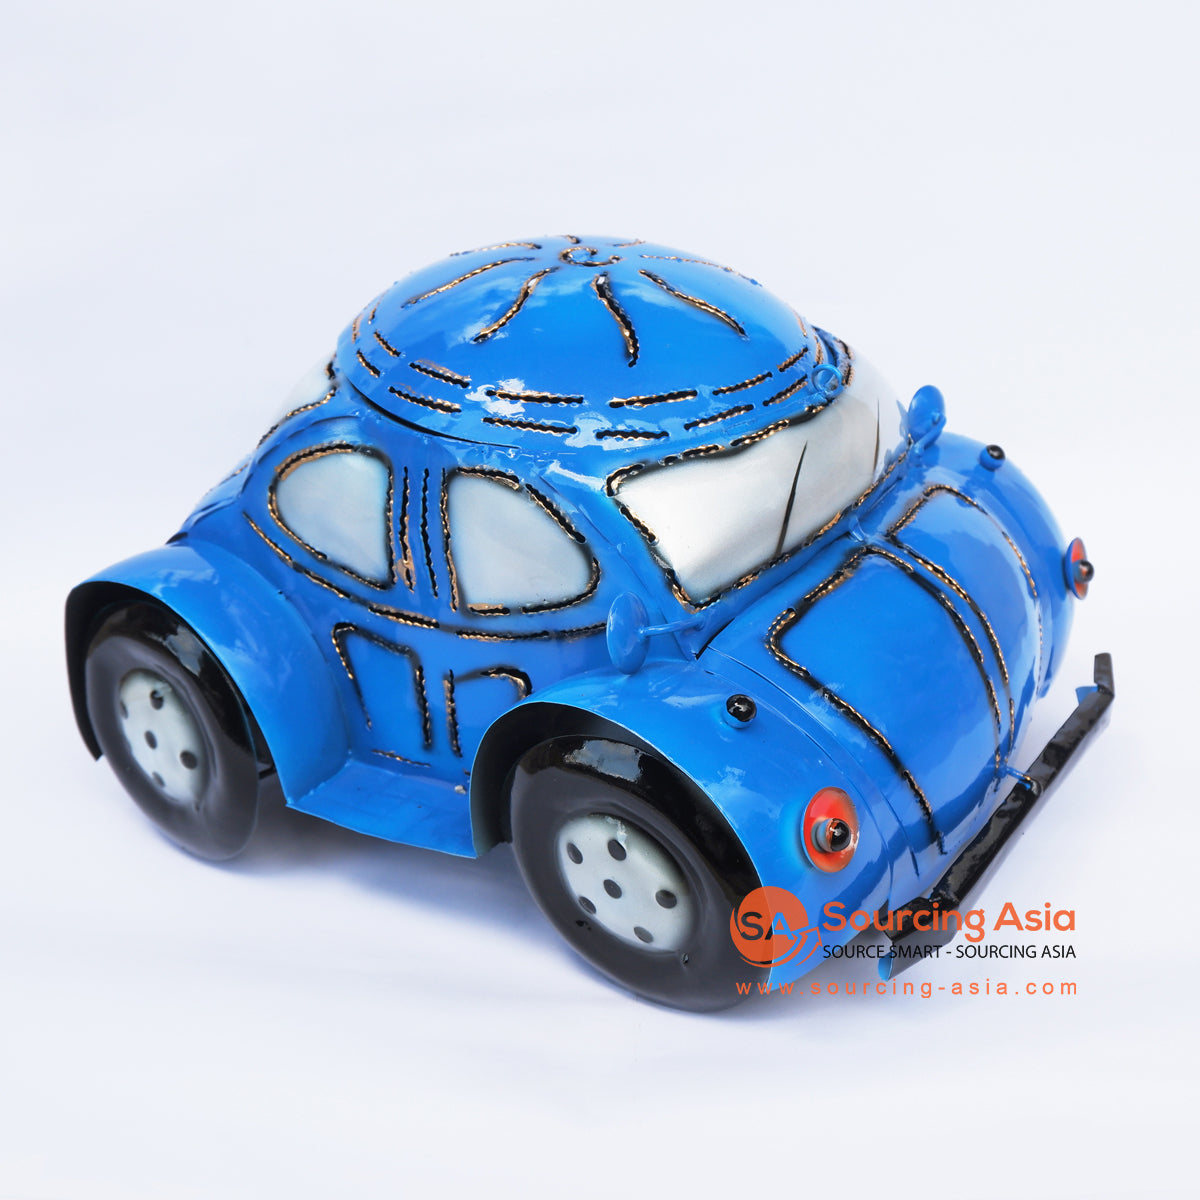 PEBC169 AIRBRUSHED PAINTED MINIATURE VW CAR DECORATION